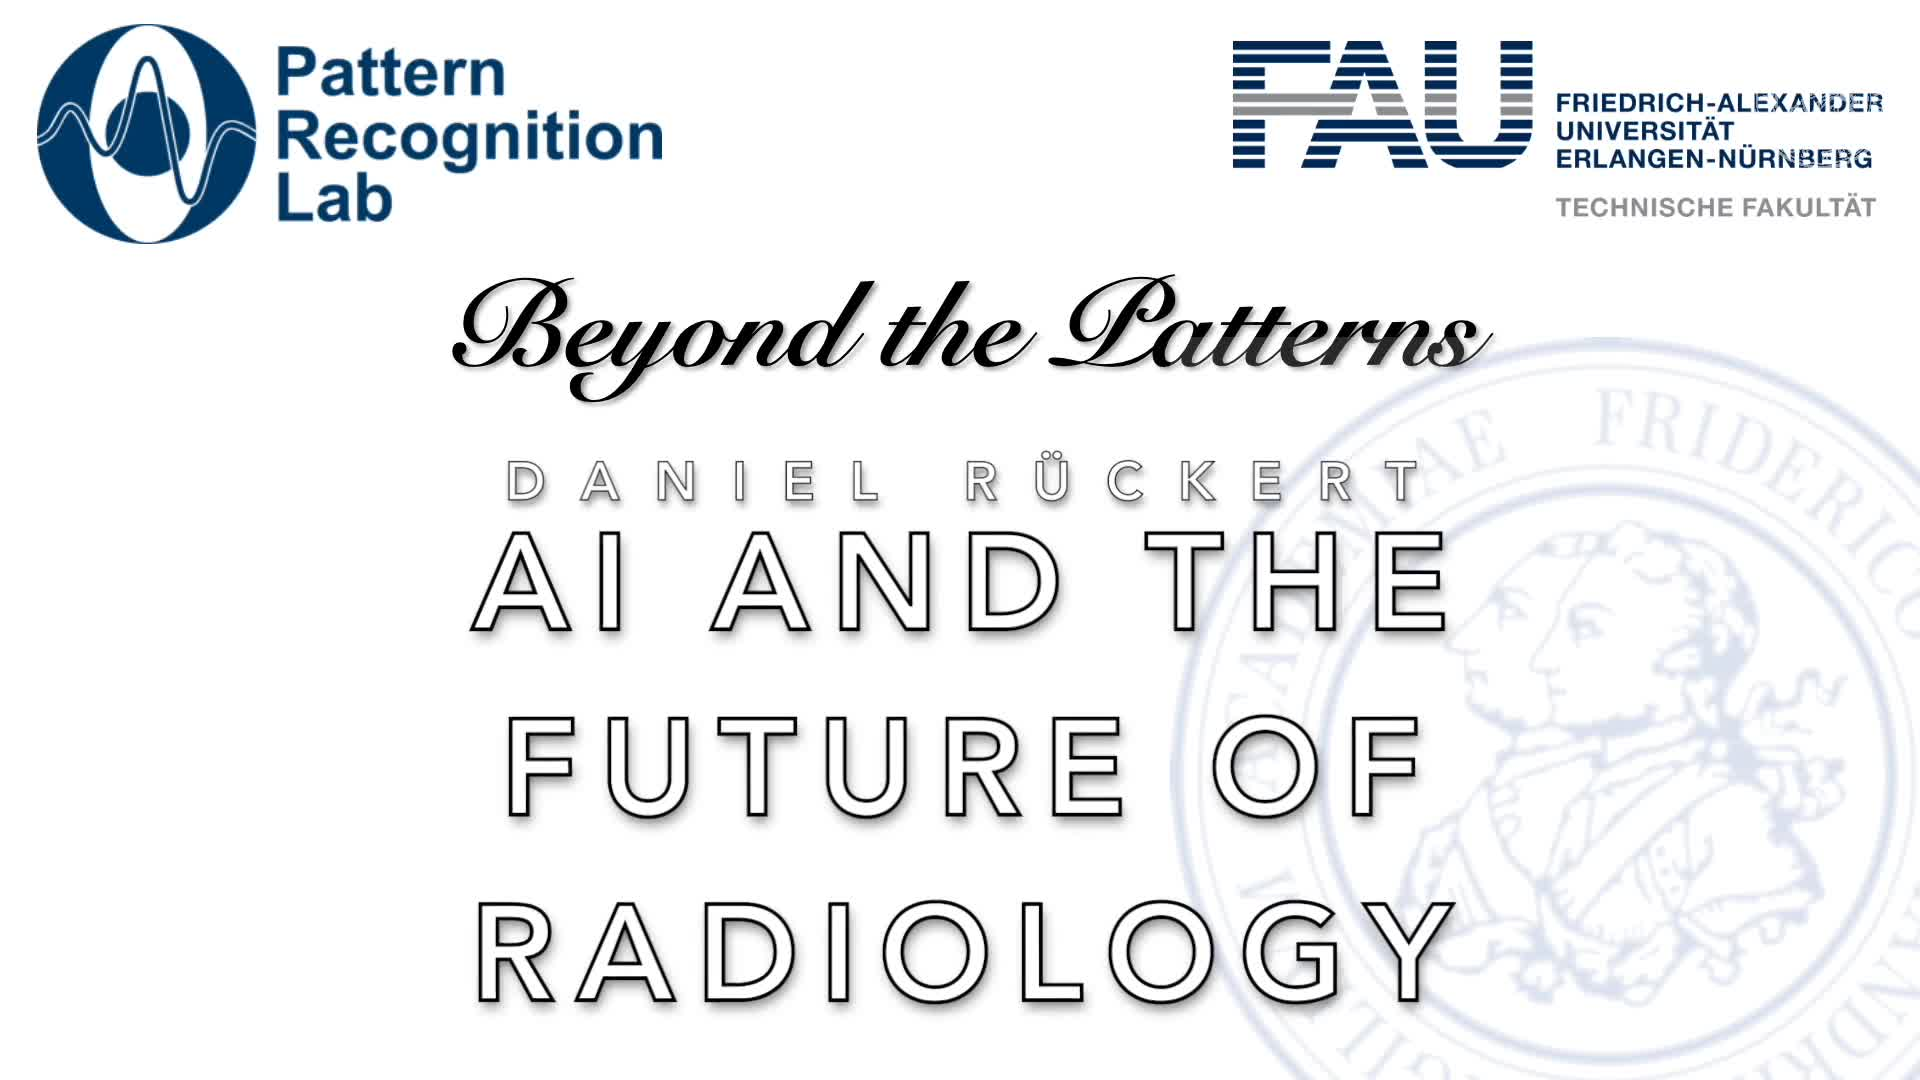 Beyond the Patterns - Daniel Rückert - AI and the future of Radiology preview image